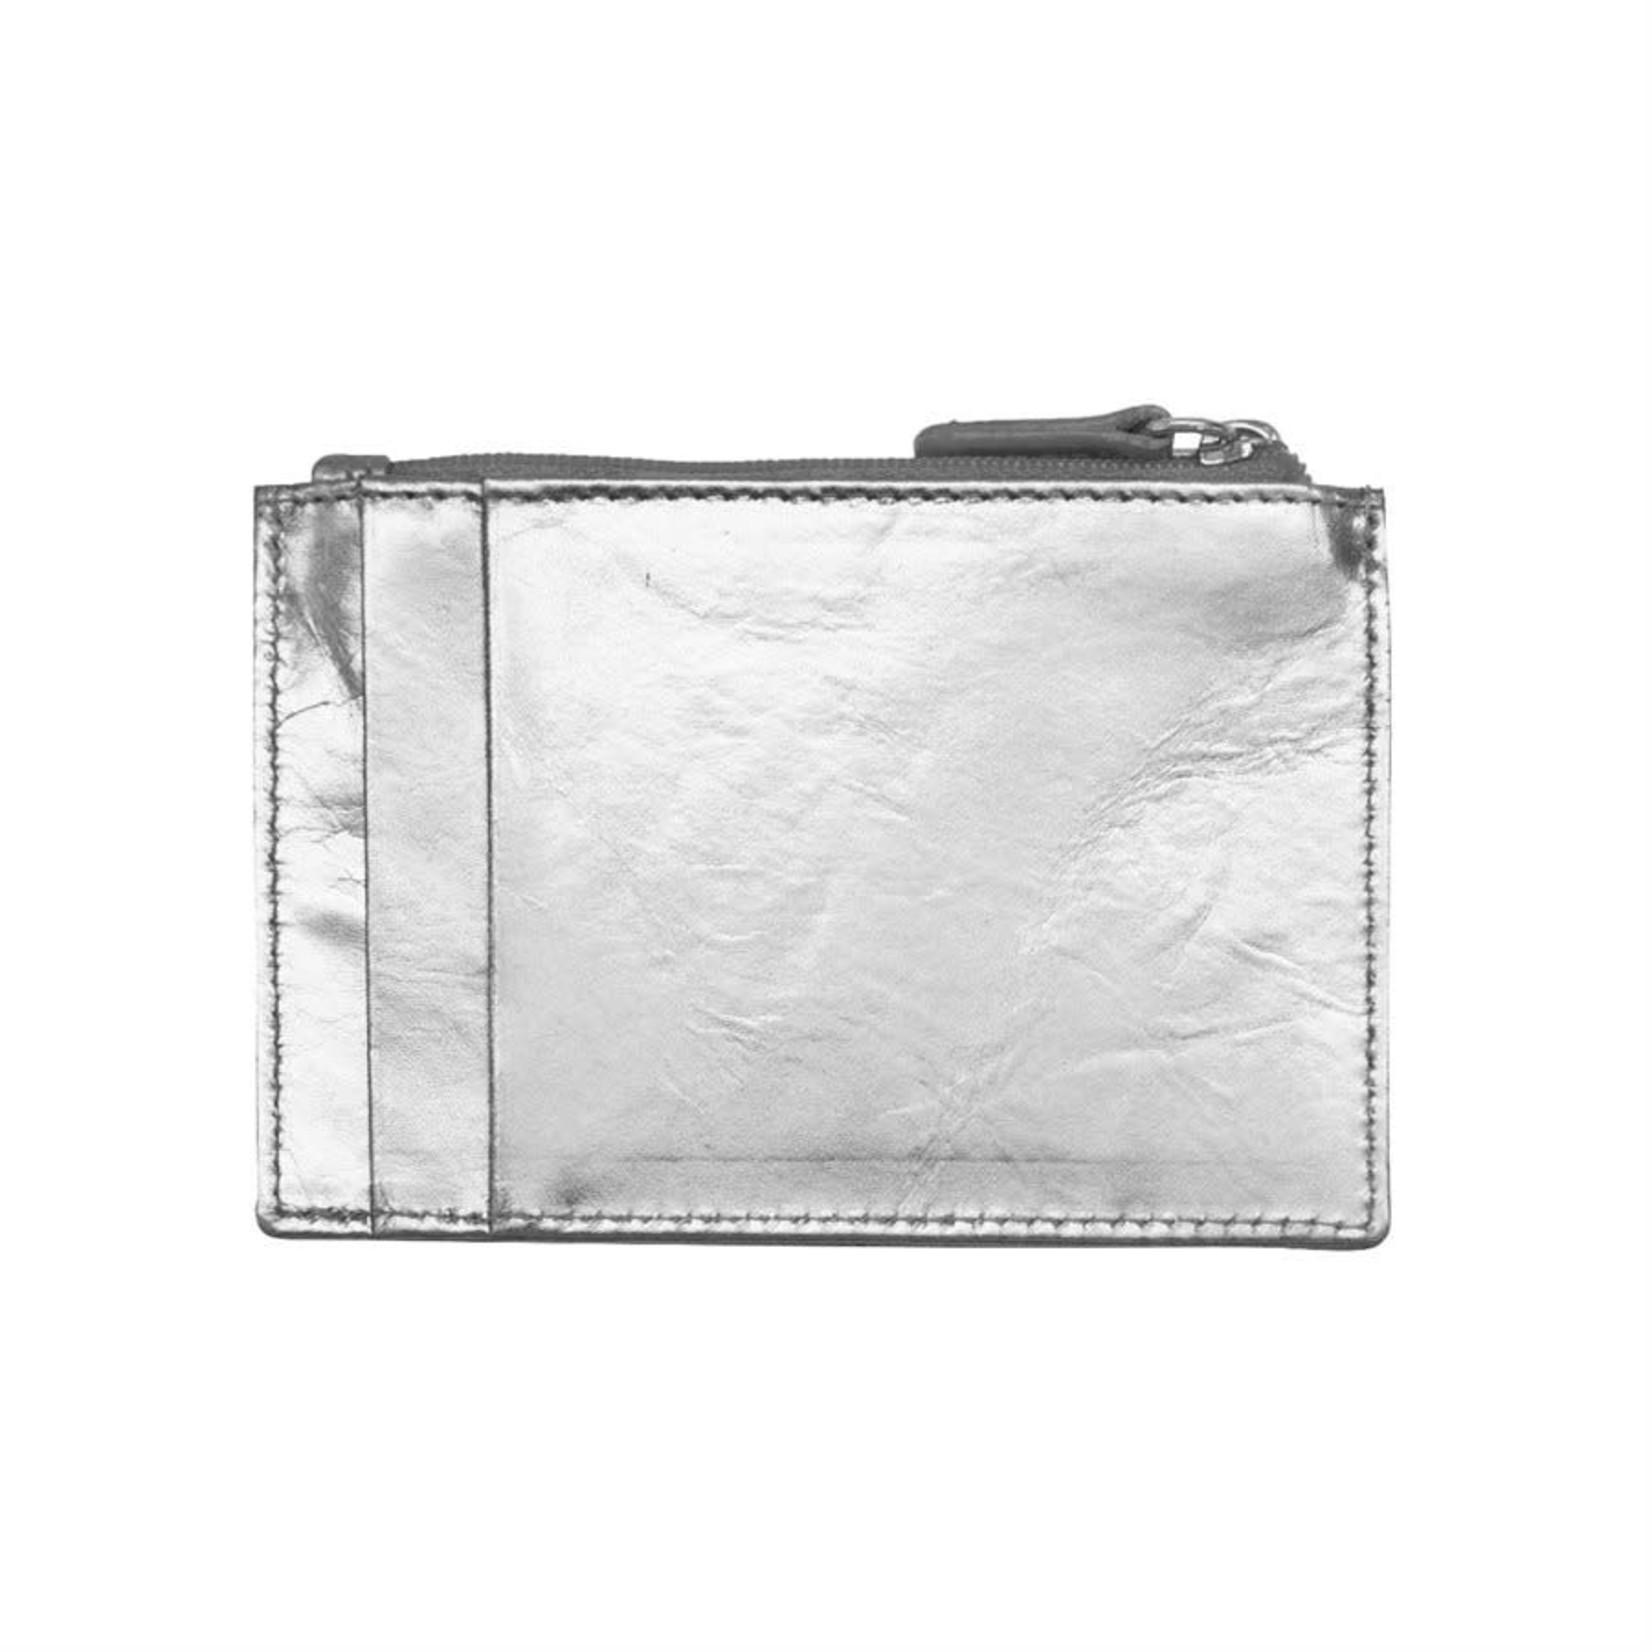 Leather Handbags and Accessories 7416 Silver - RFID Card Holder